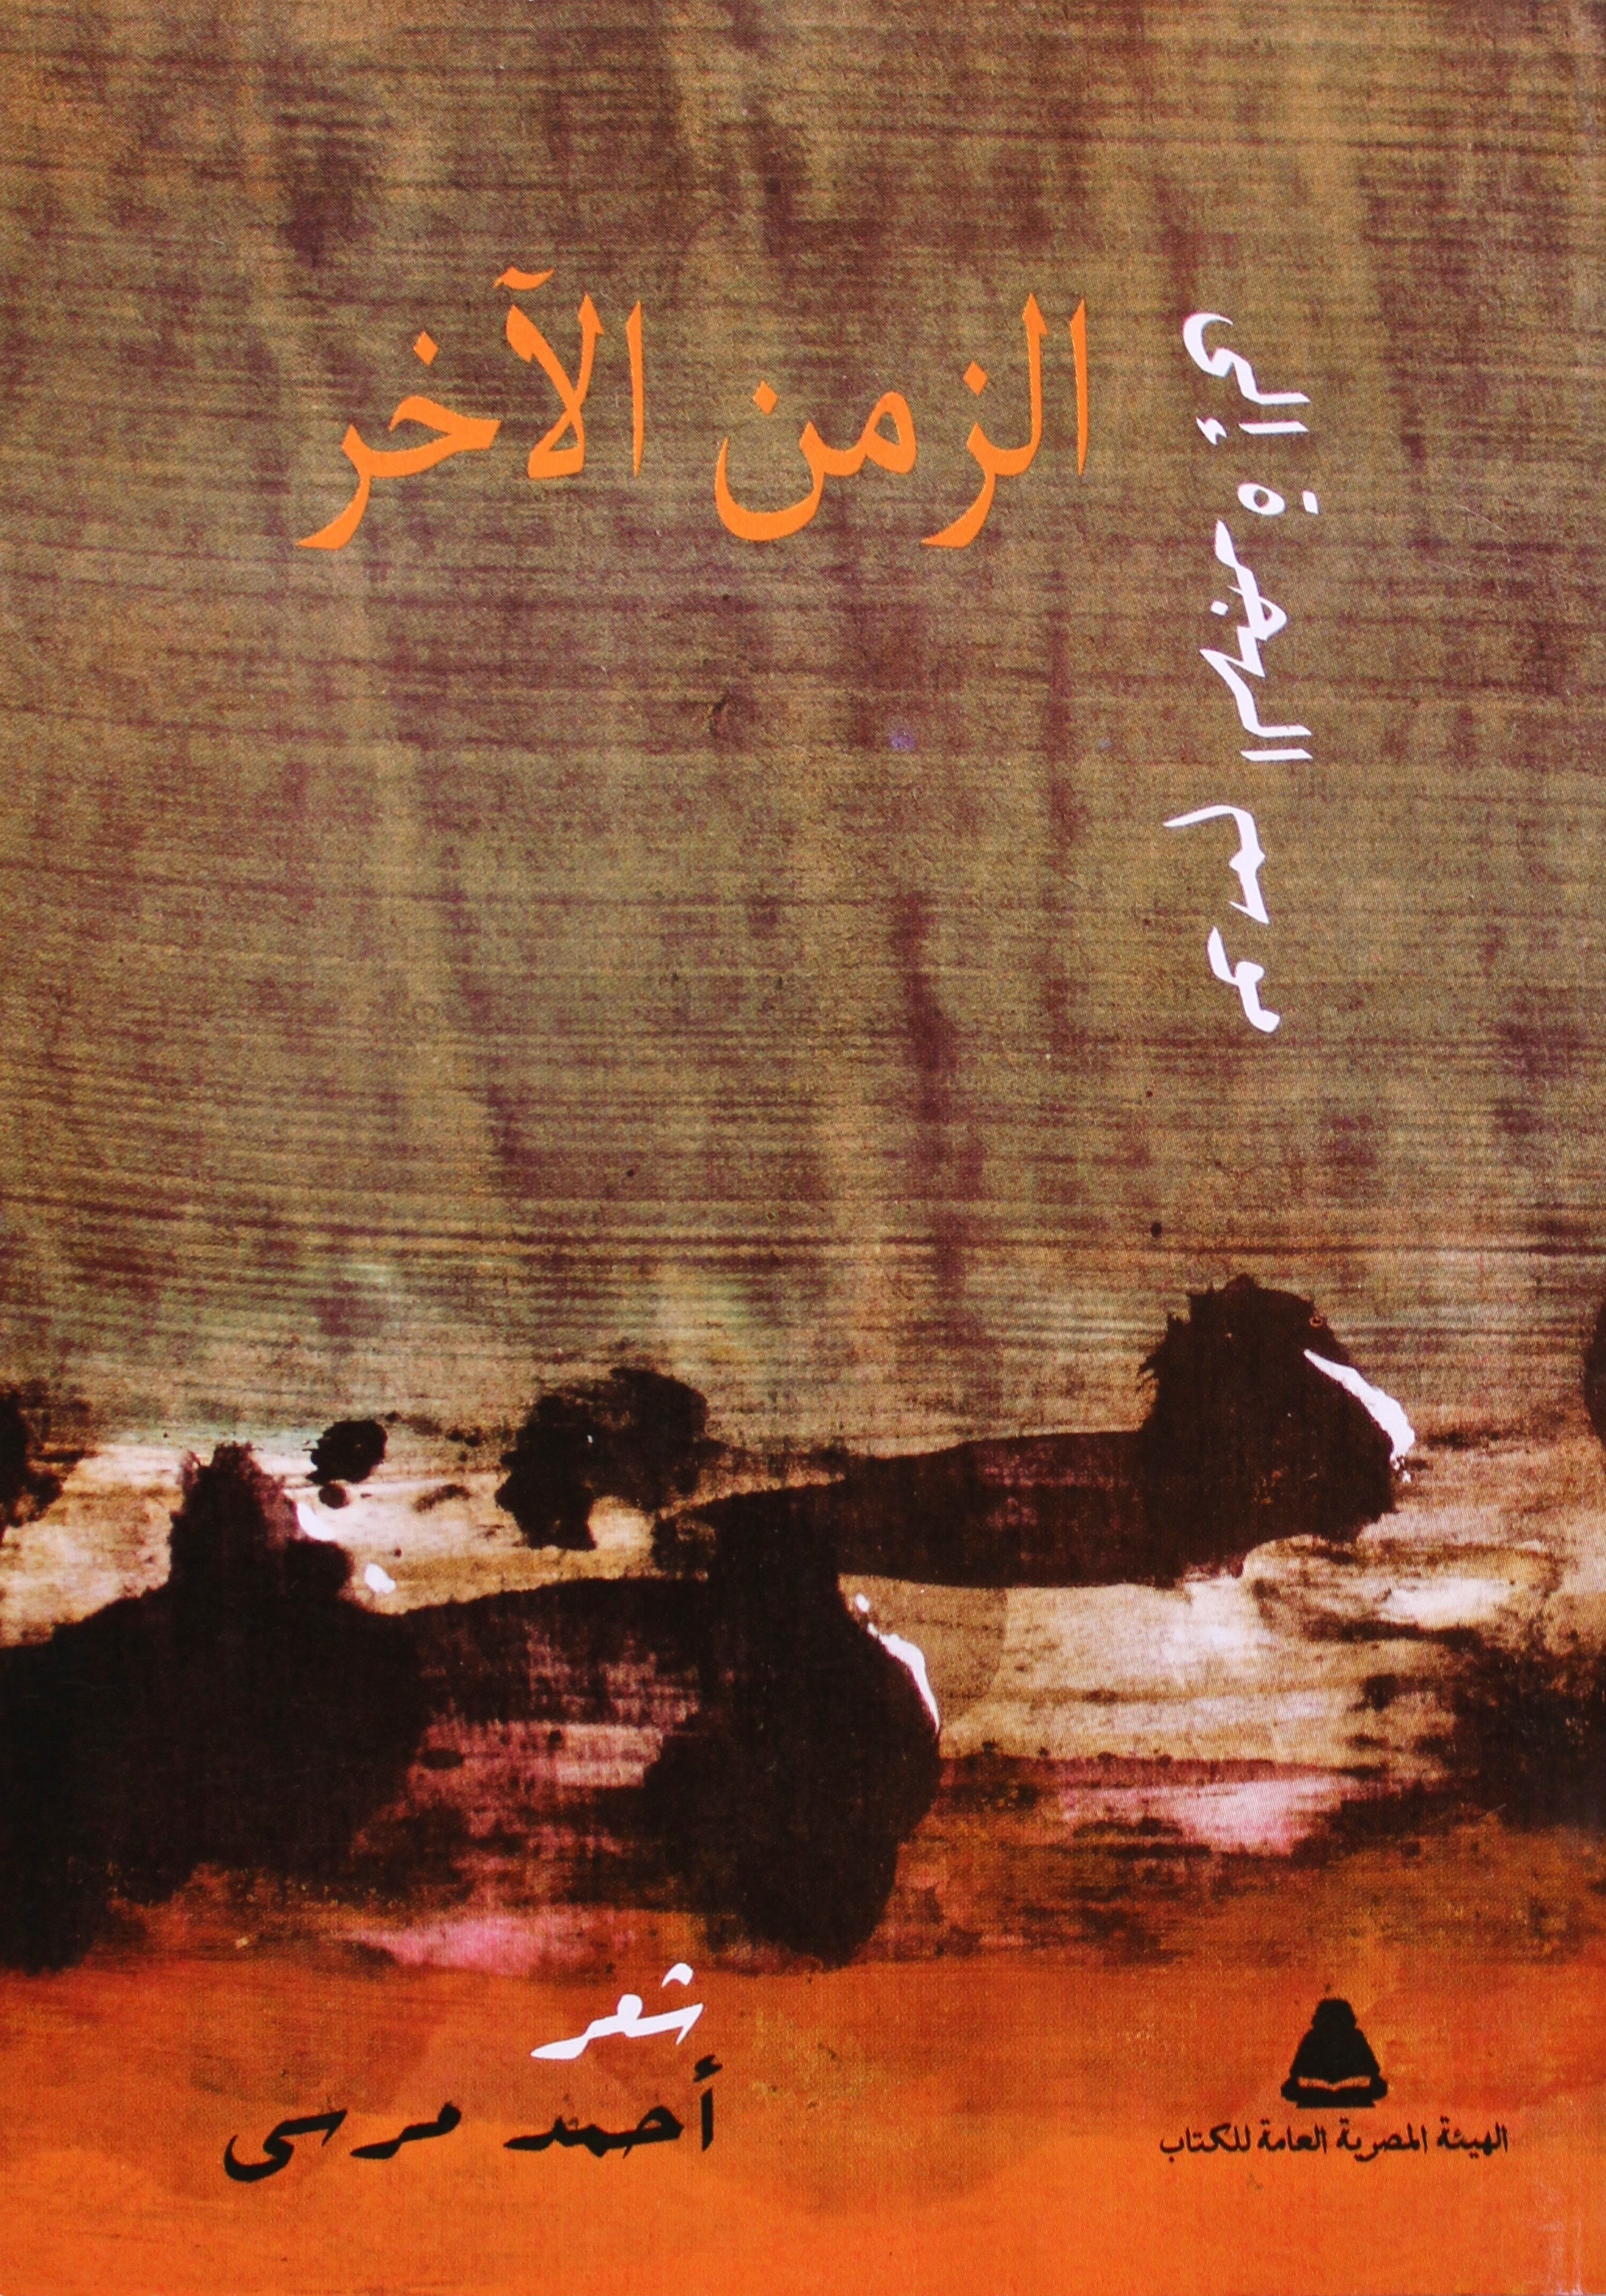 Cover by Adel El Siwi